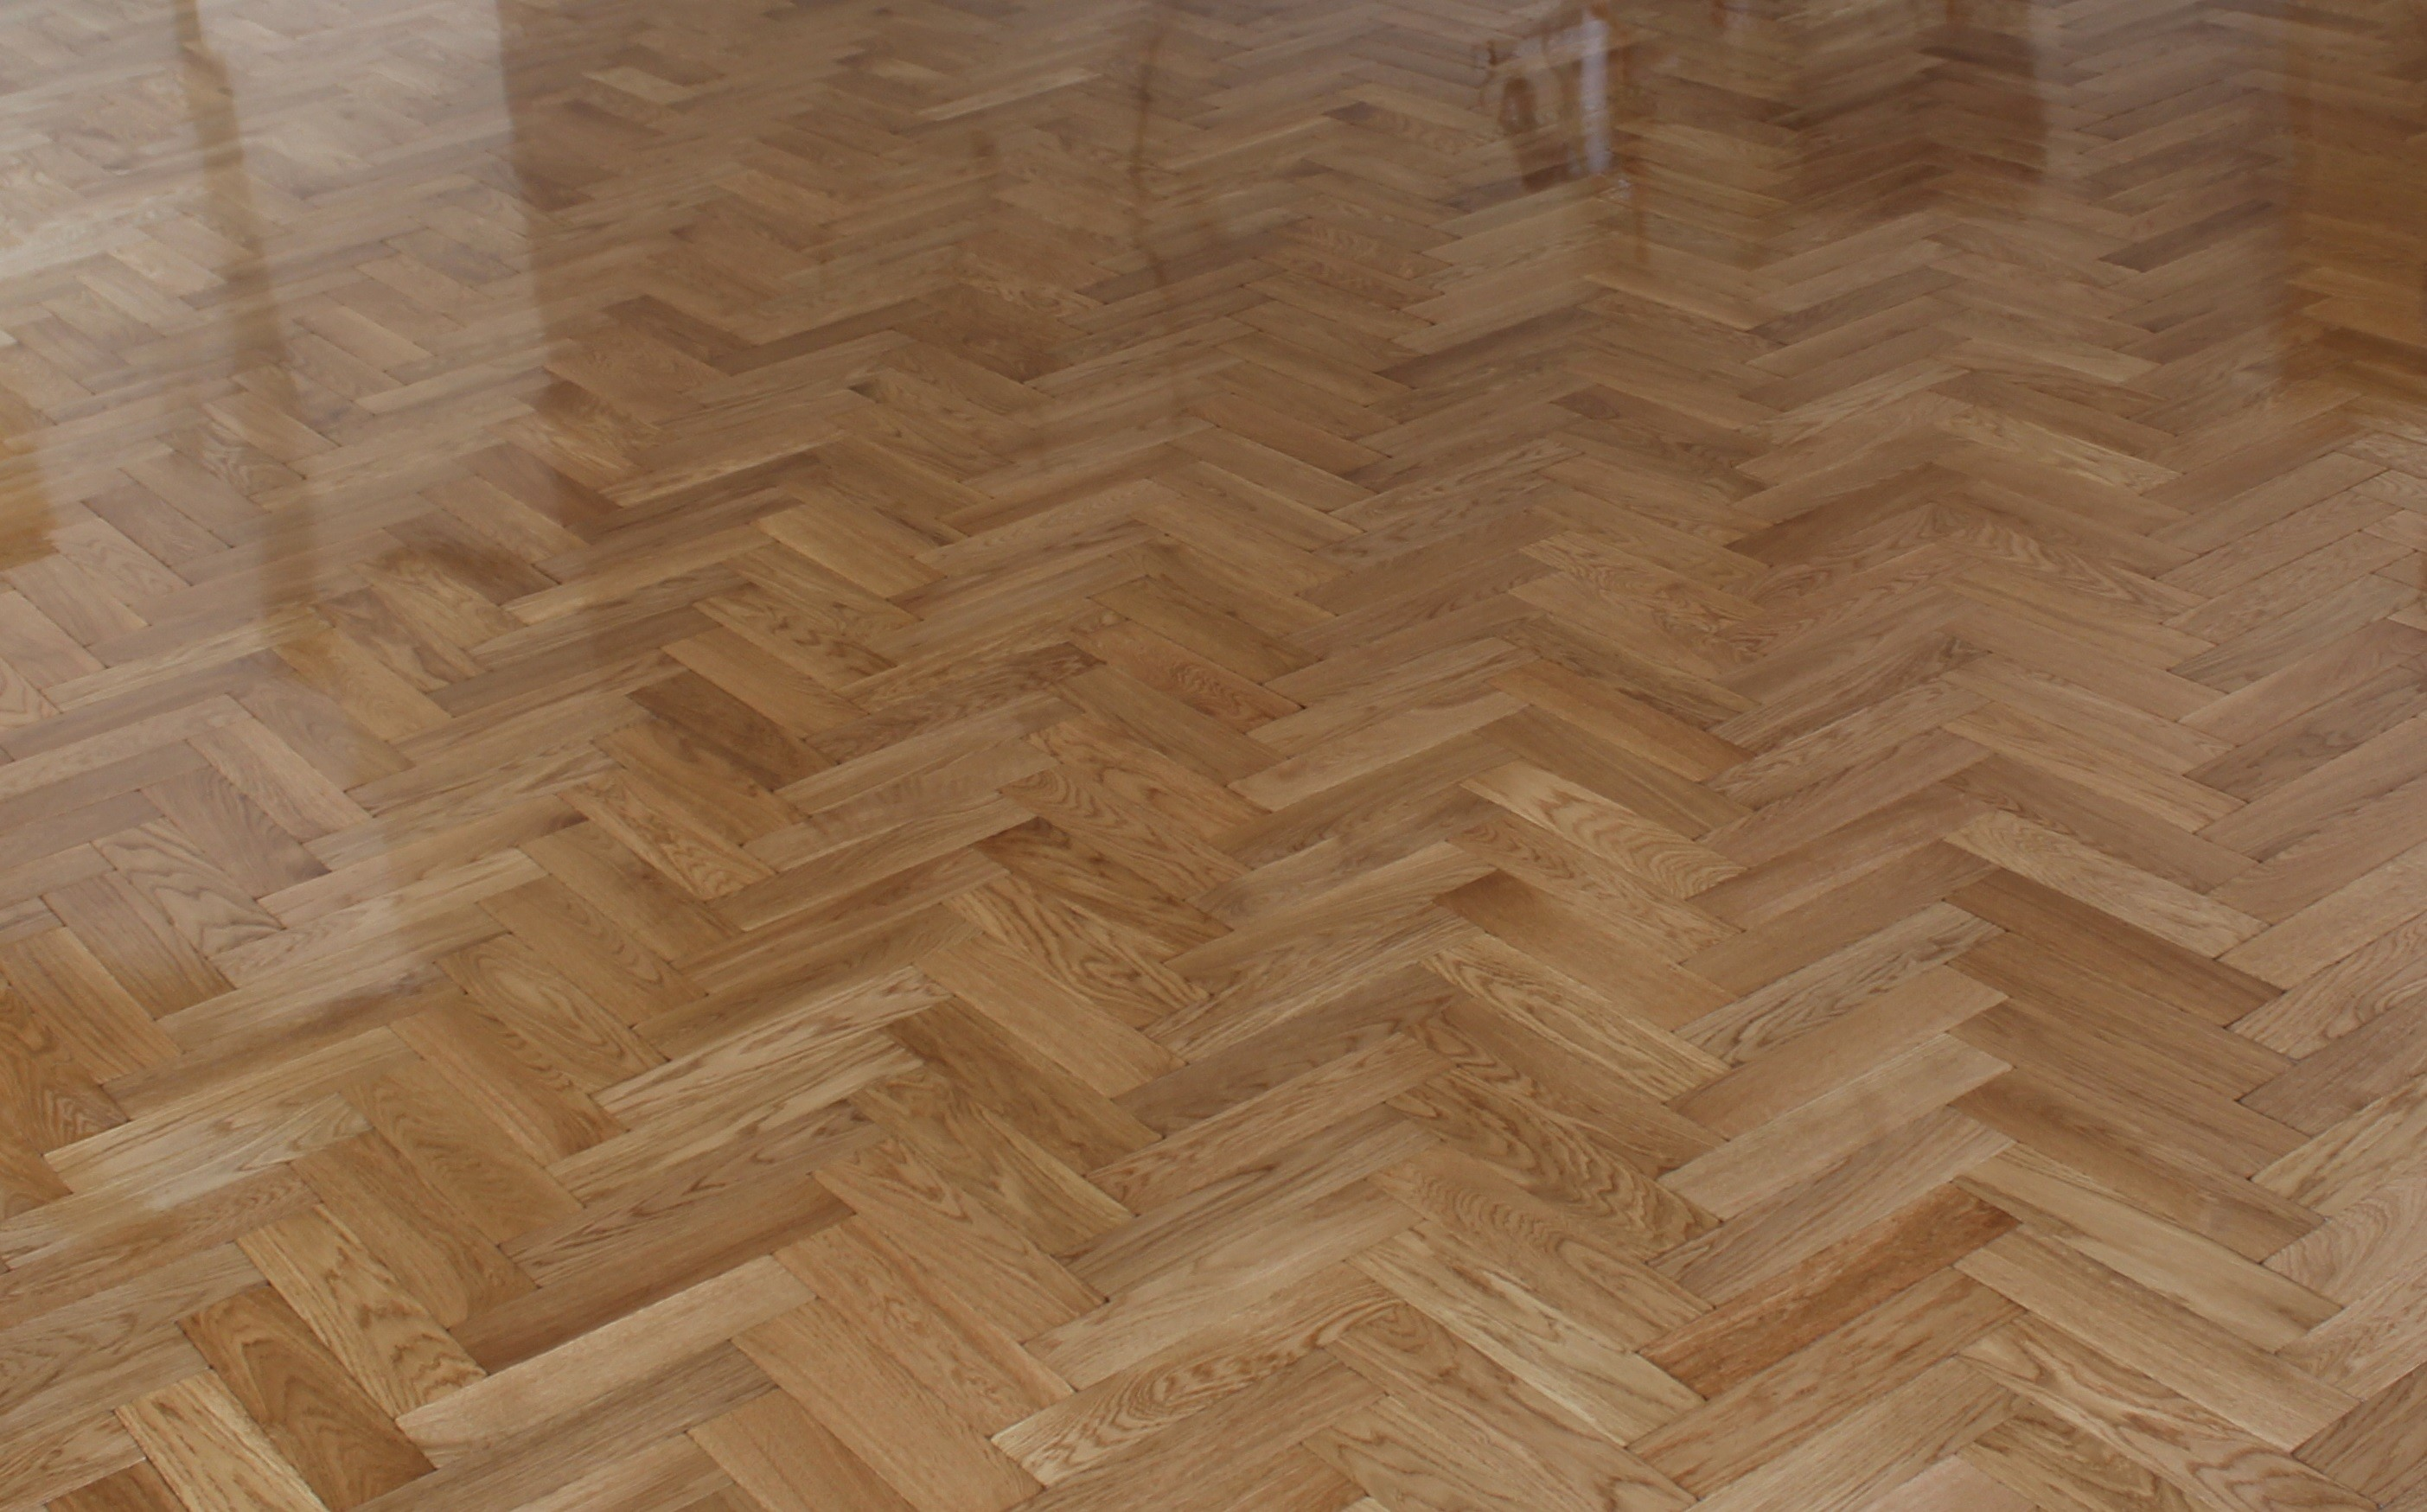 remove flooring to removing floor parquet plywood shelter how estate from real stripper gimme